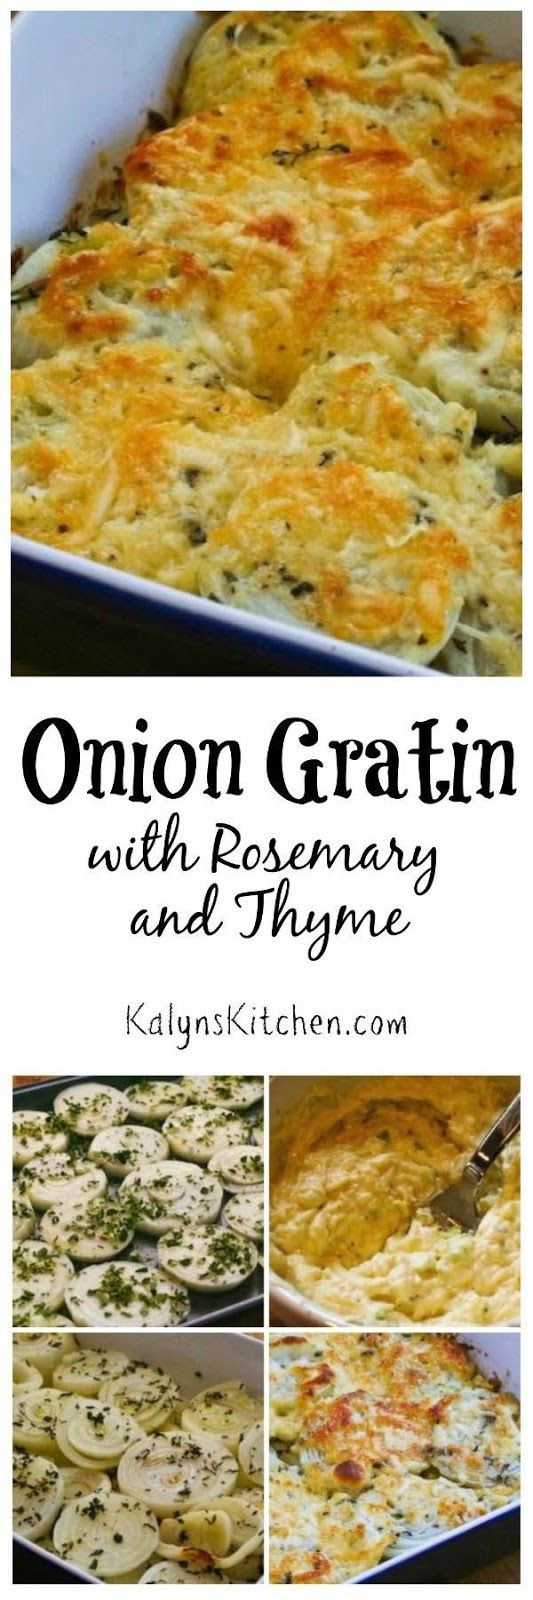 Onion Gratin with Rosemary and Thyme is a delicious low-carb and ...